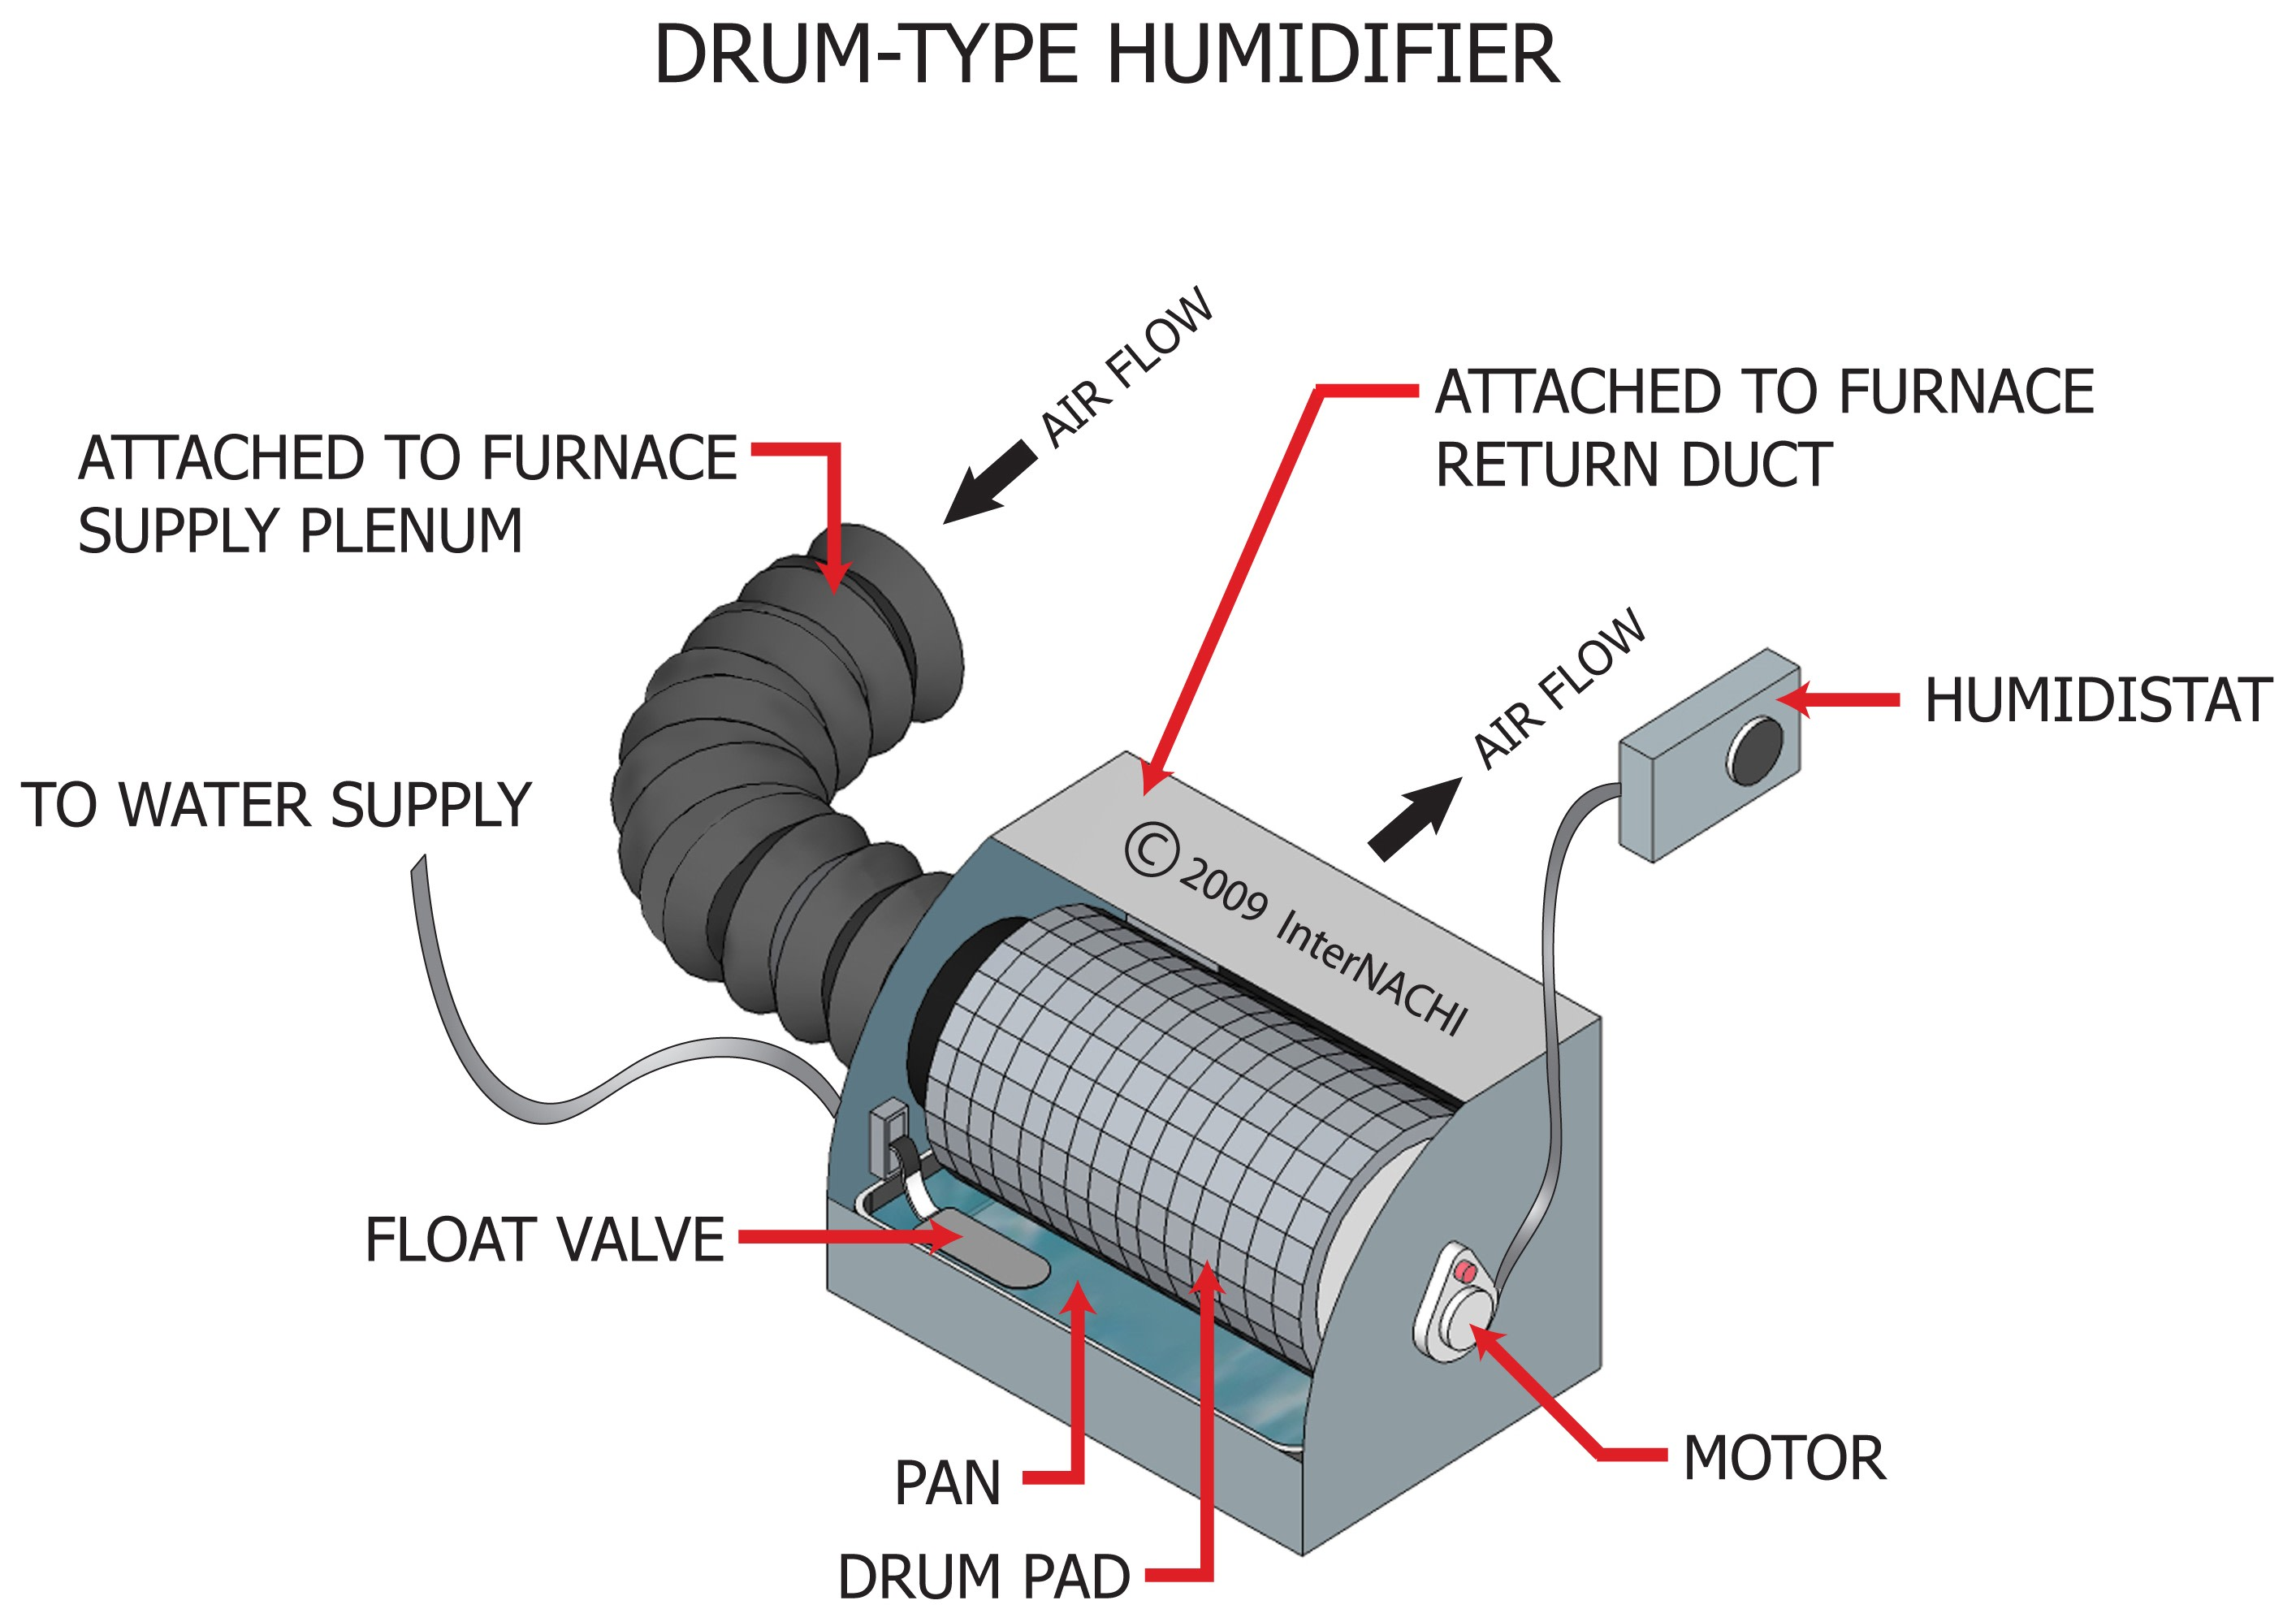 Drum-type humidifier.